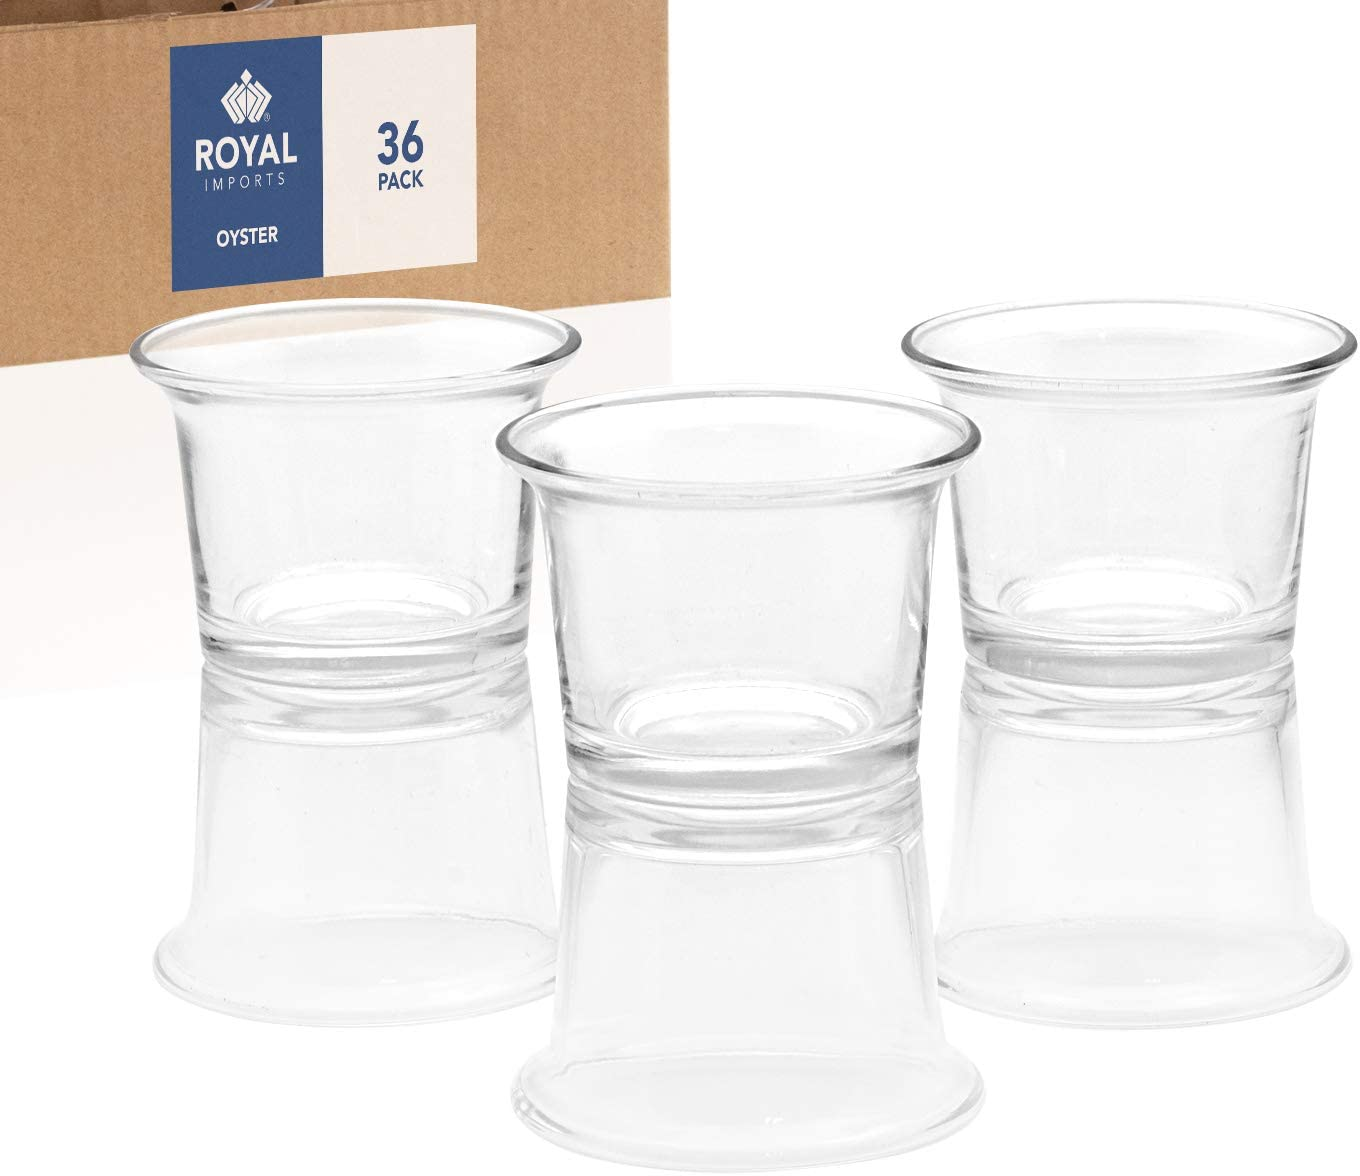 Royal Imports Candle Holder Glass Votive for Wedding, Birthday, Holiday & Home Decoration, Oyster, Set of 36 - Unfilled